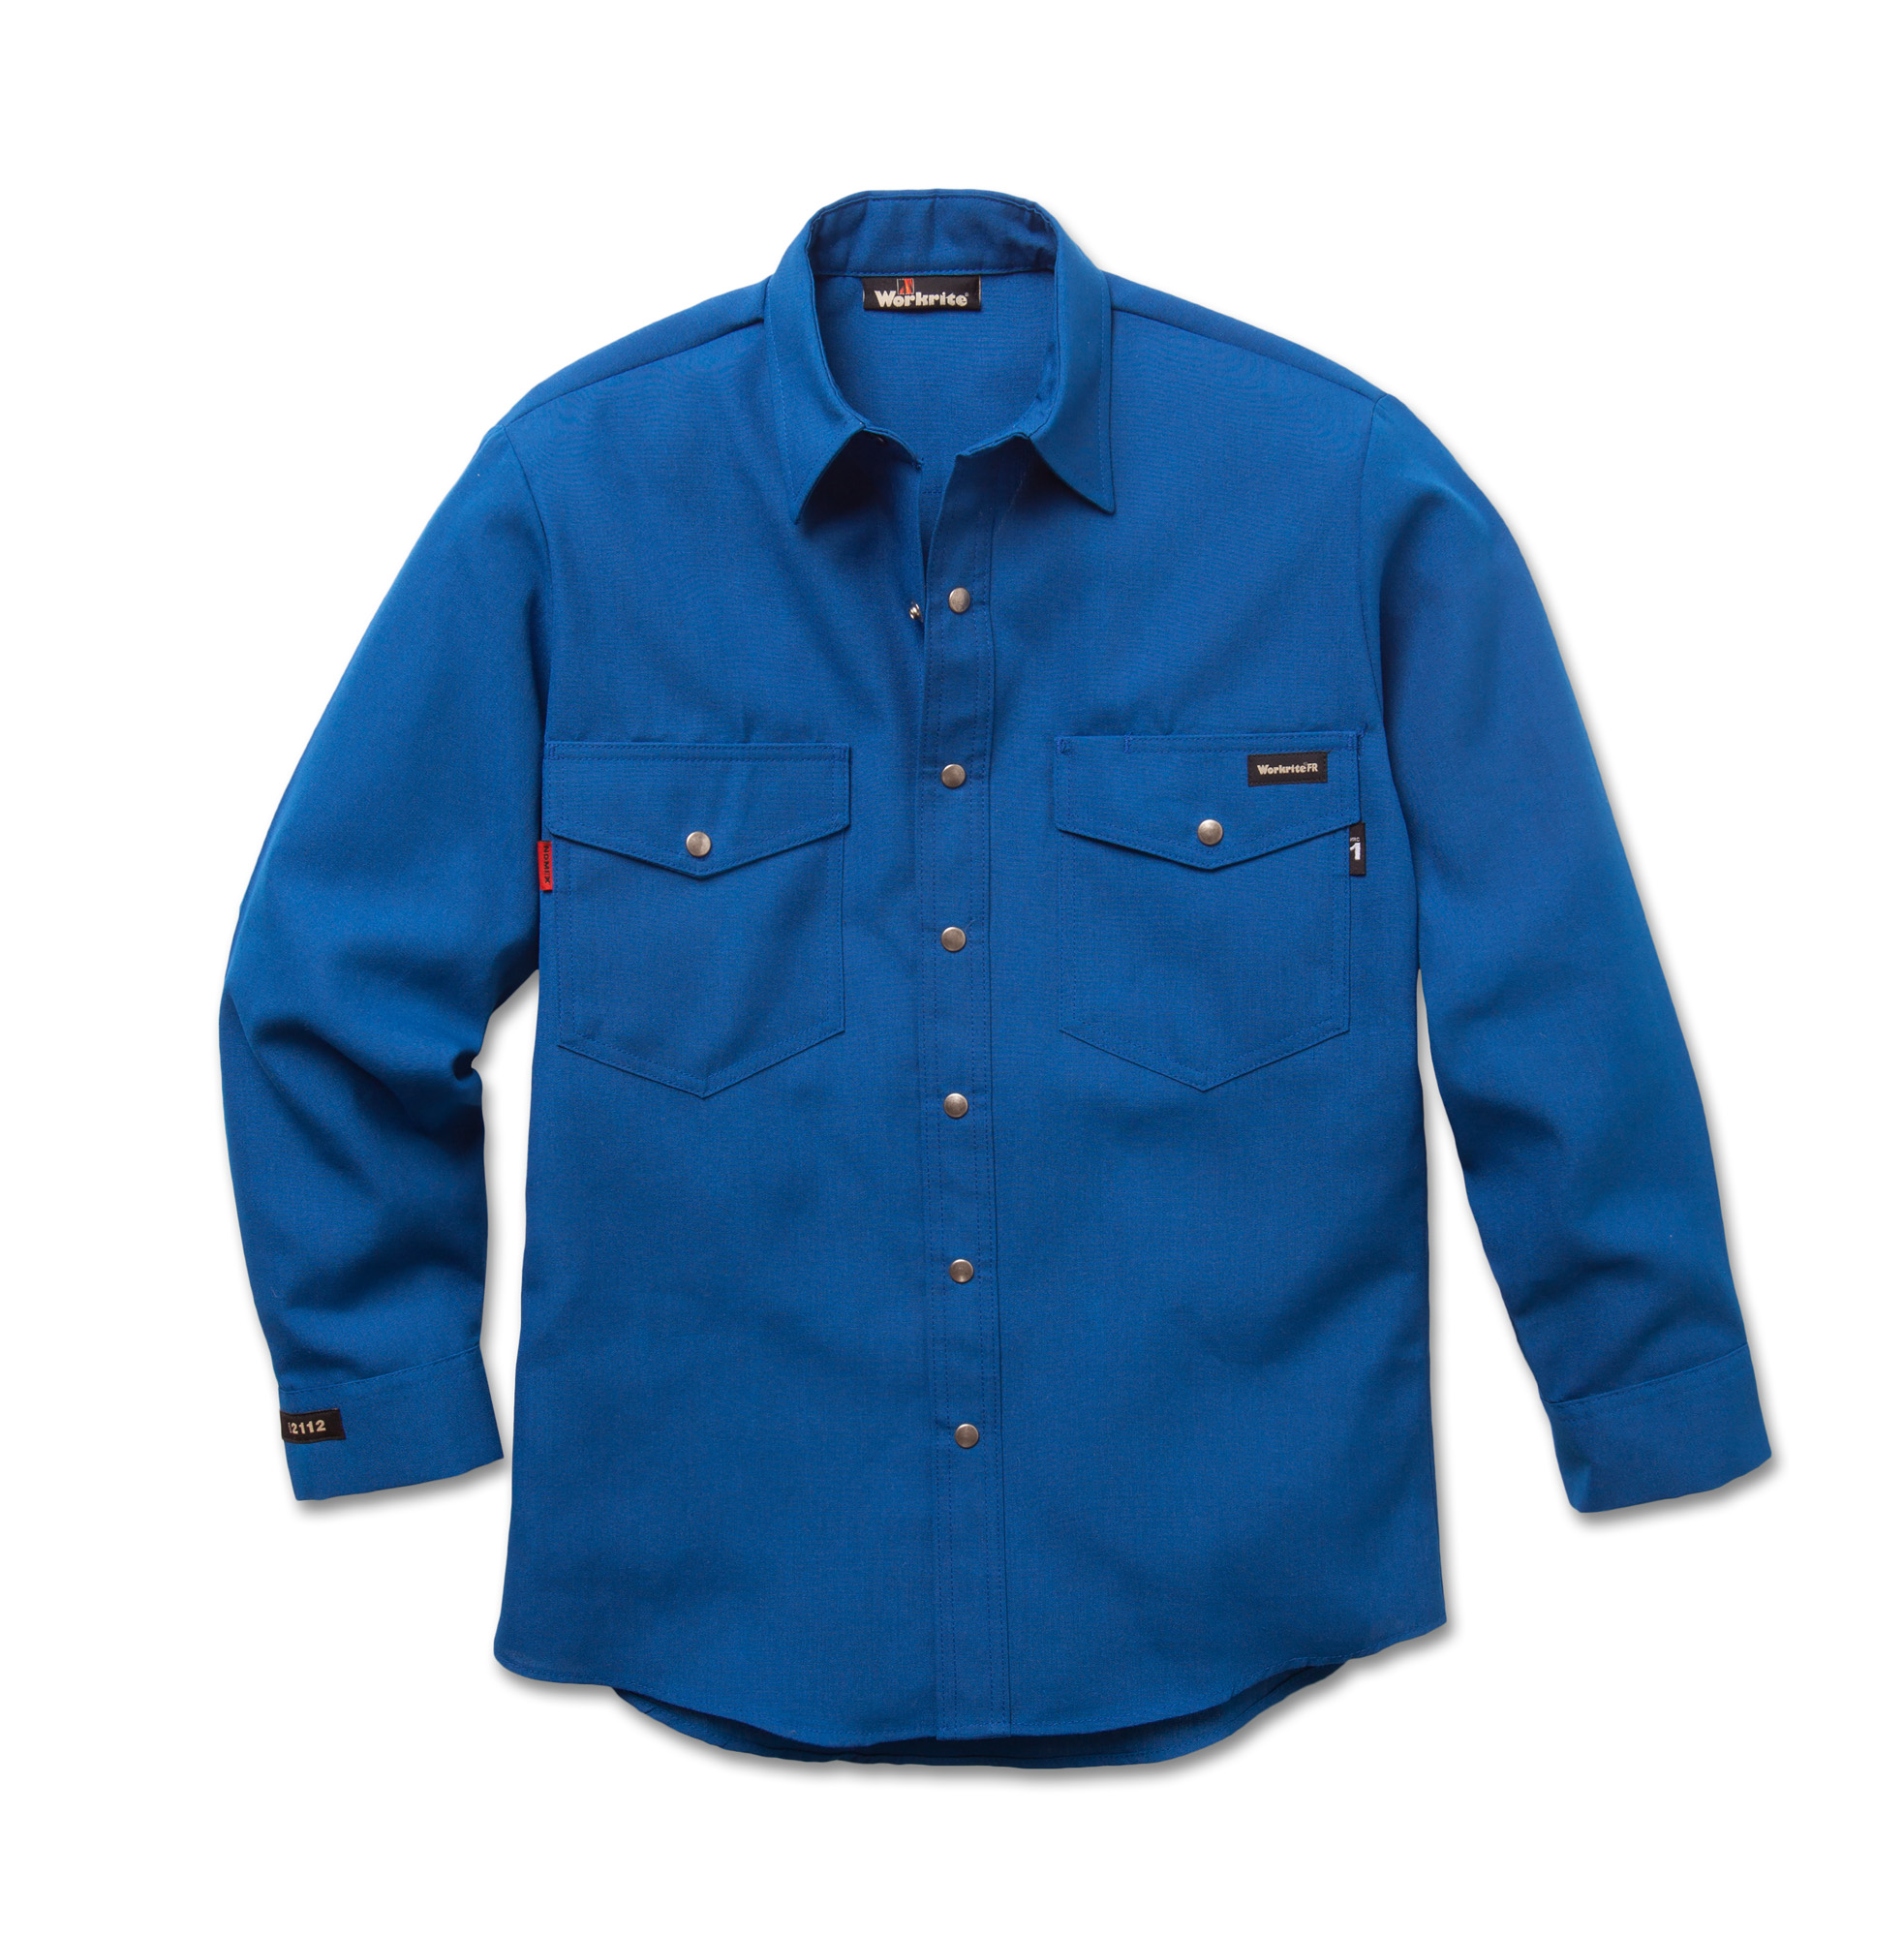 ed410c84c926 Workrite Uniform Co. - Workrite Nomex IIIA Western Style Shirt  220NX45